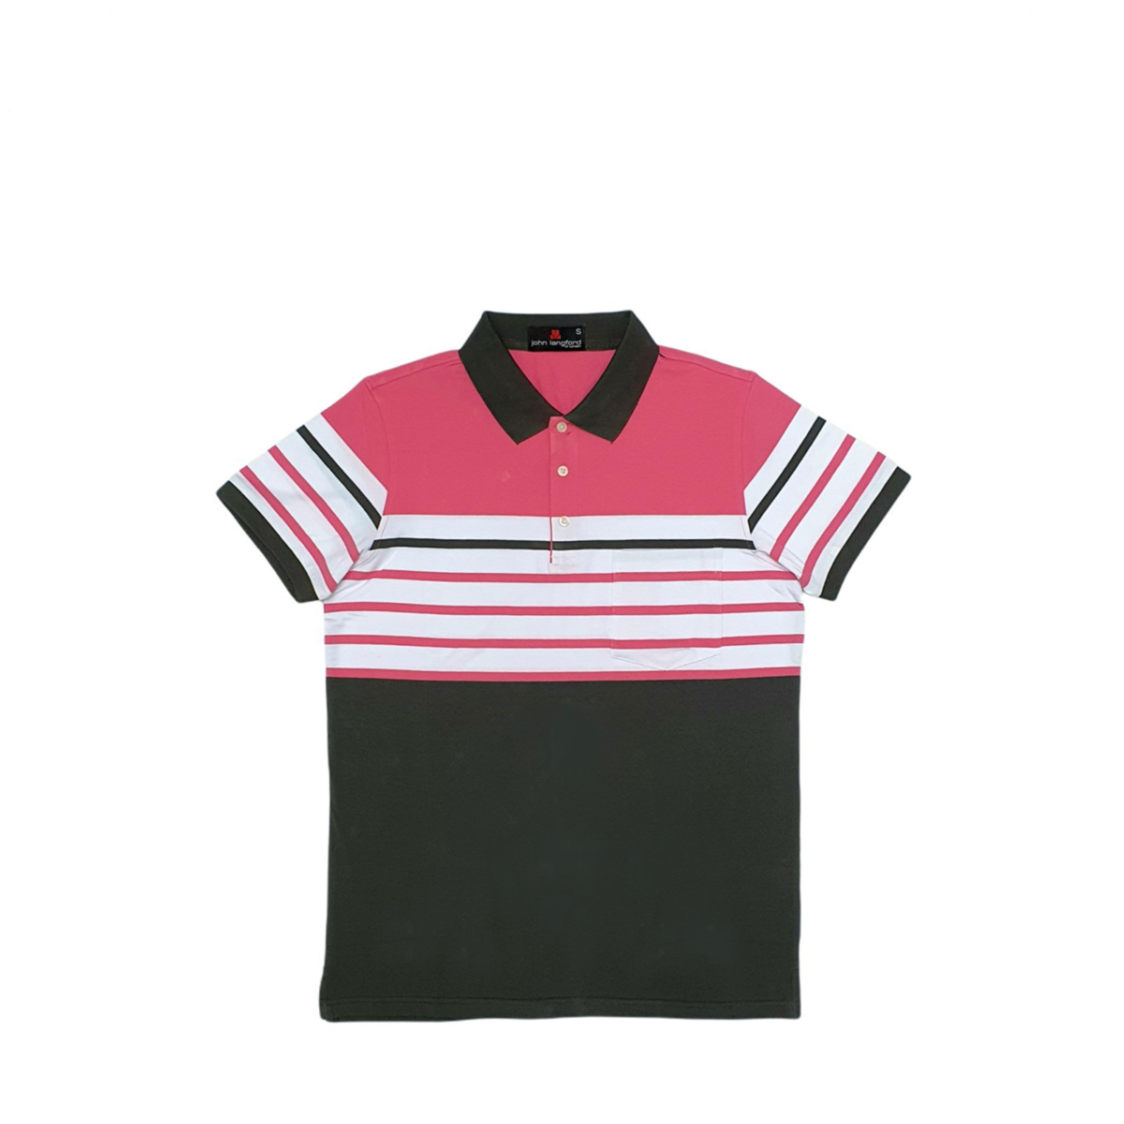 John Langford Stretchable Striped Polo T-Shirt with Pocket Pink